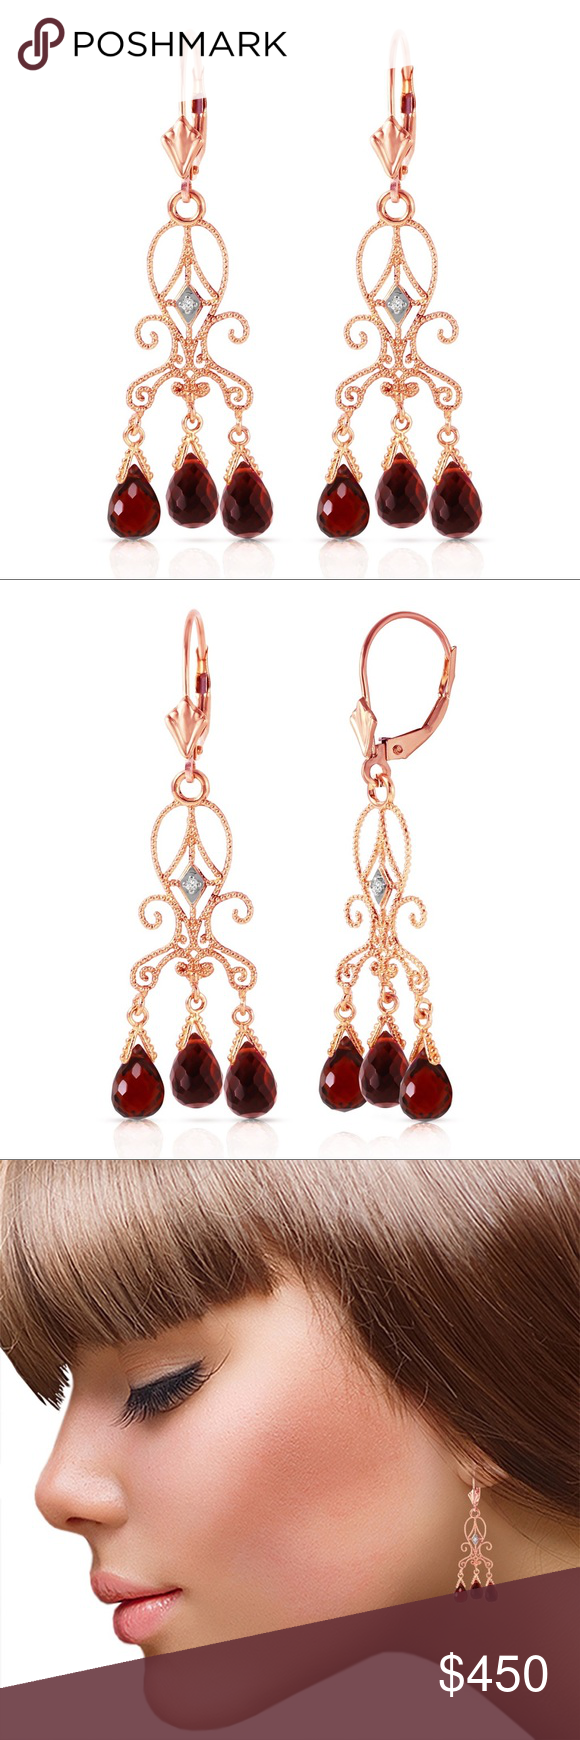 Spotted while shopping on Poshmark 14K GOLD CHANDELIERS DIAMONDS EARRING GARNETS Gold Products